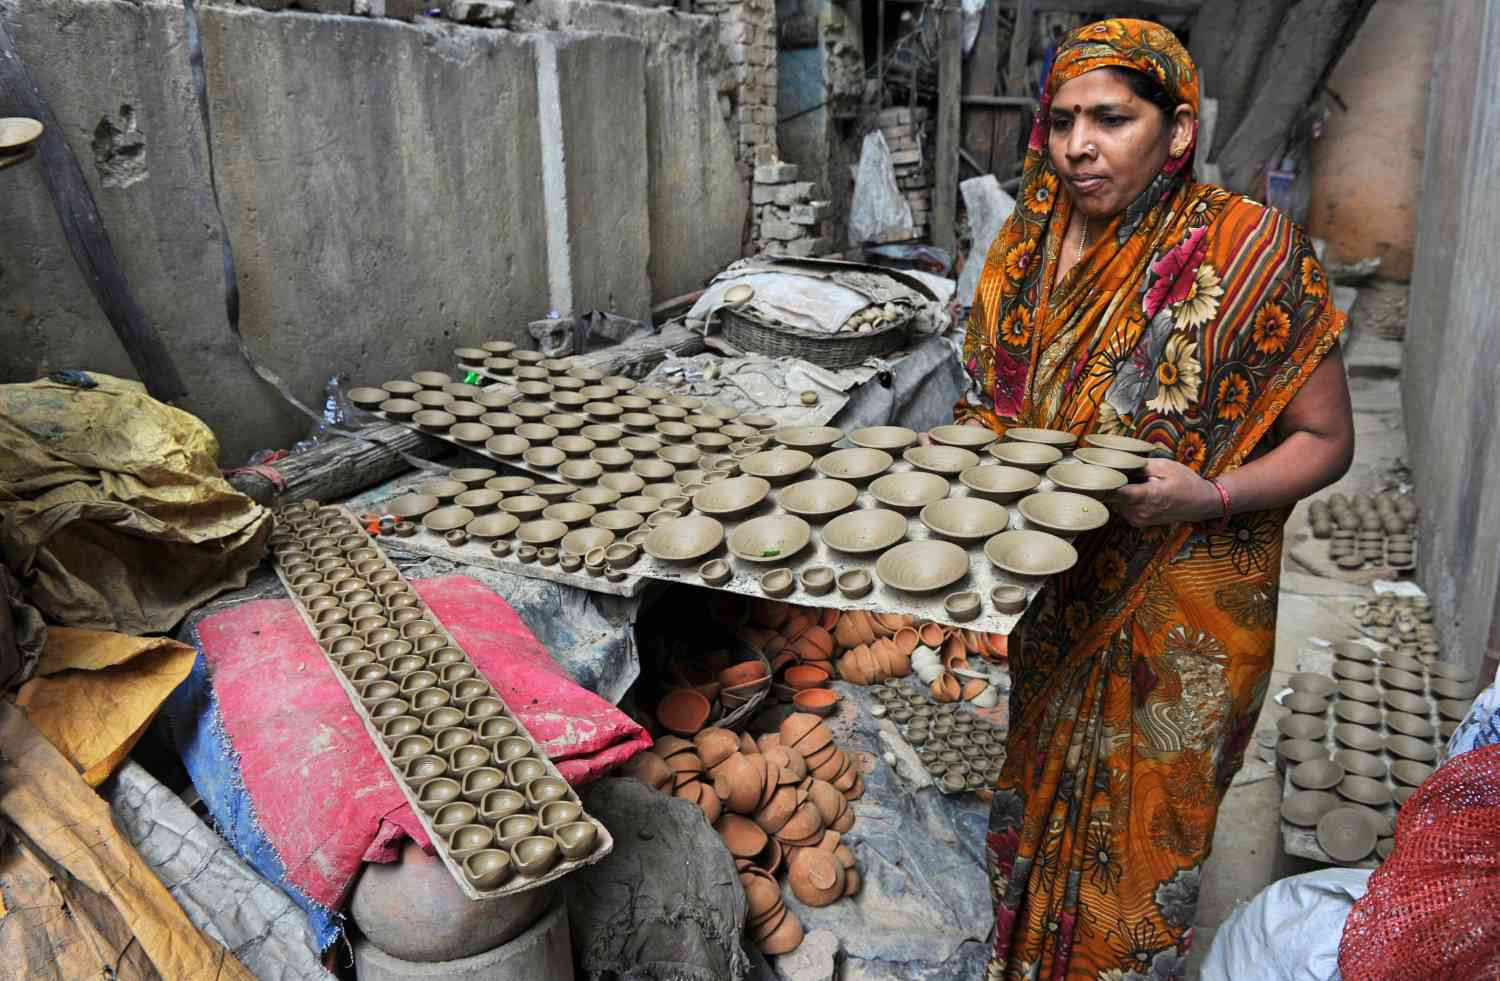 A potter in New Delhi prepares earthen lamps ahead of Diwali in October 2012. (Photo credit: AFP/Sajjad Hussain).